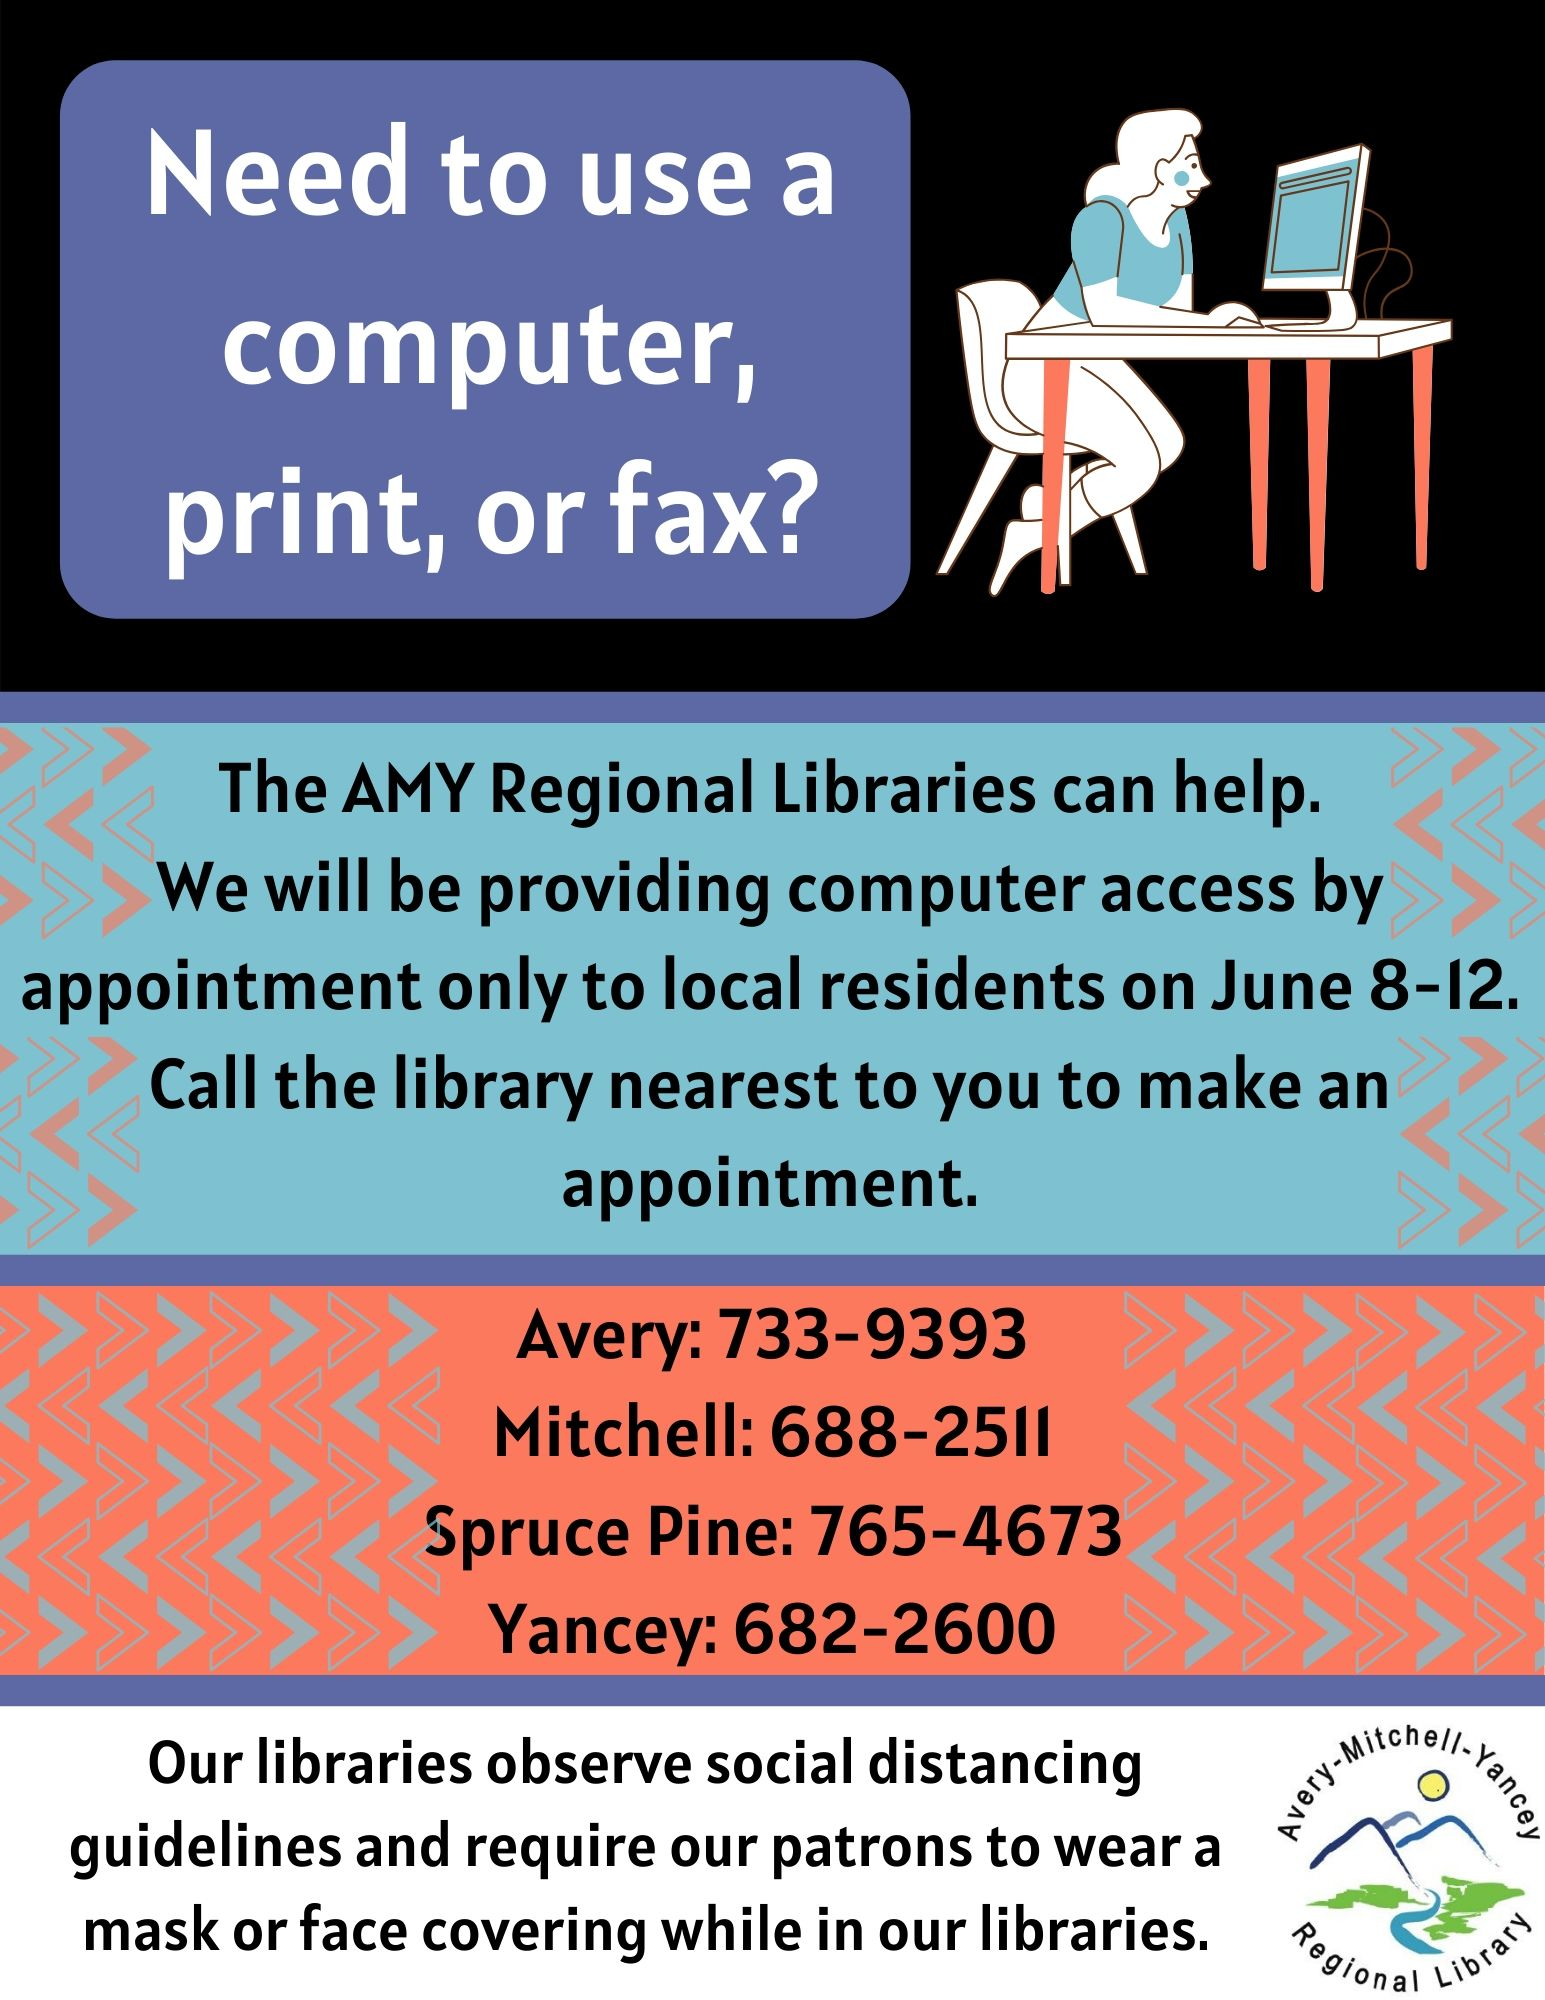 Make an appointment to use a computer June 8-12